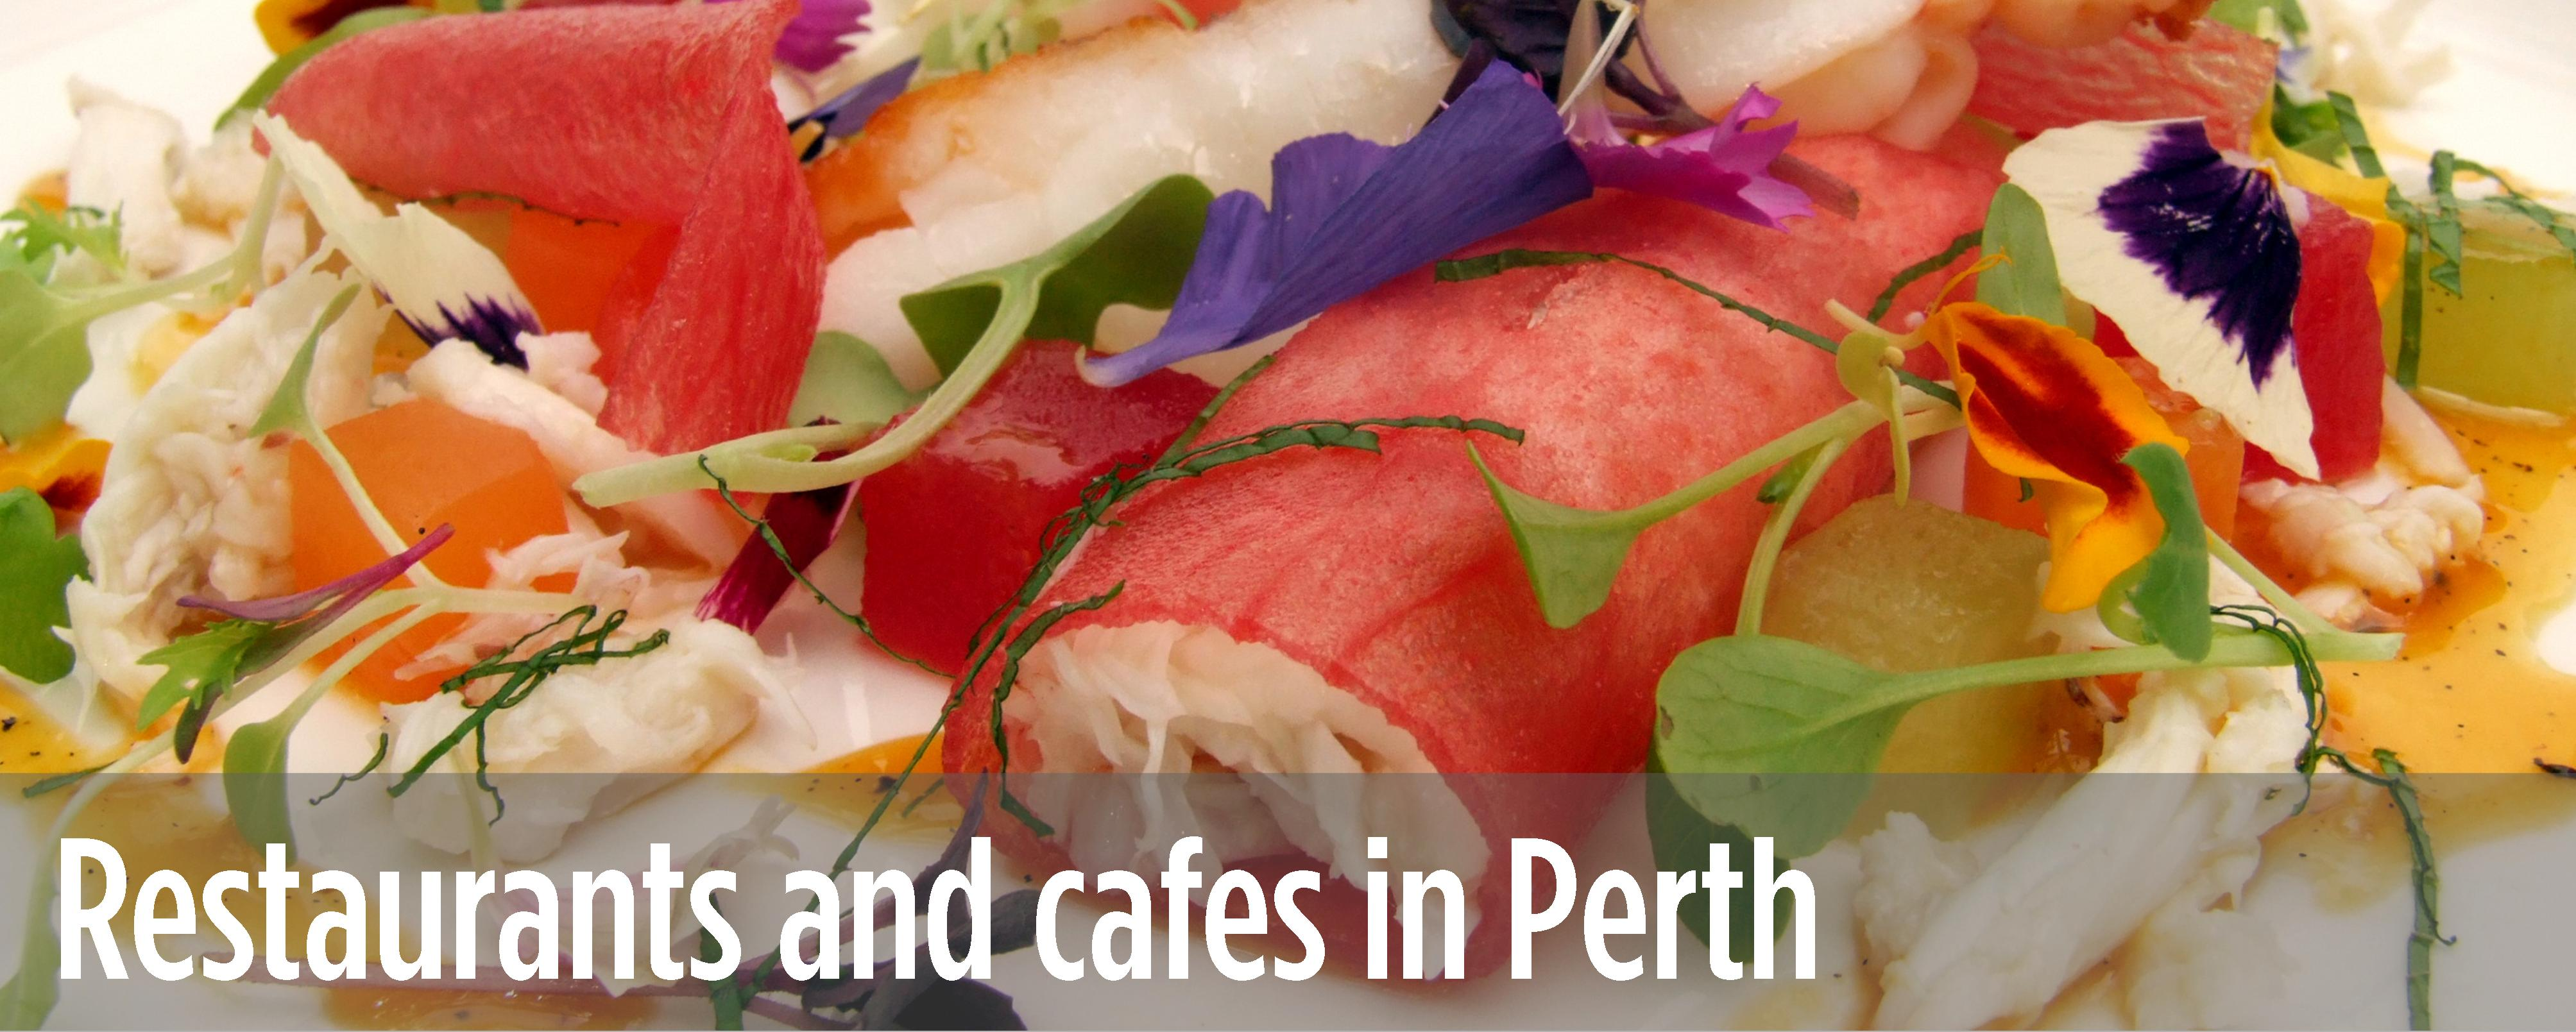 Restaurants & Cafes in Perth